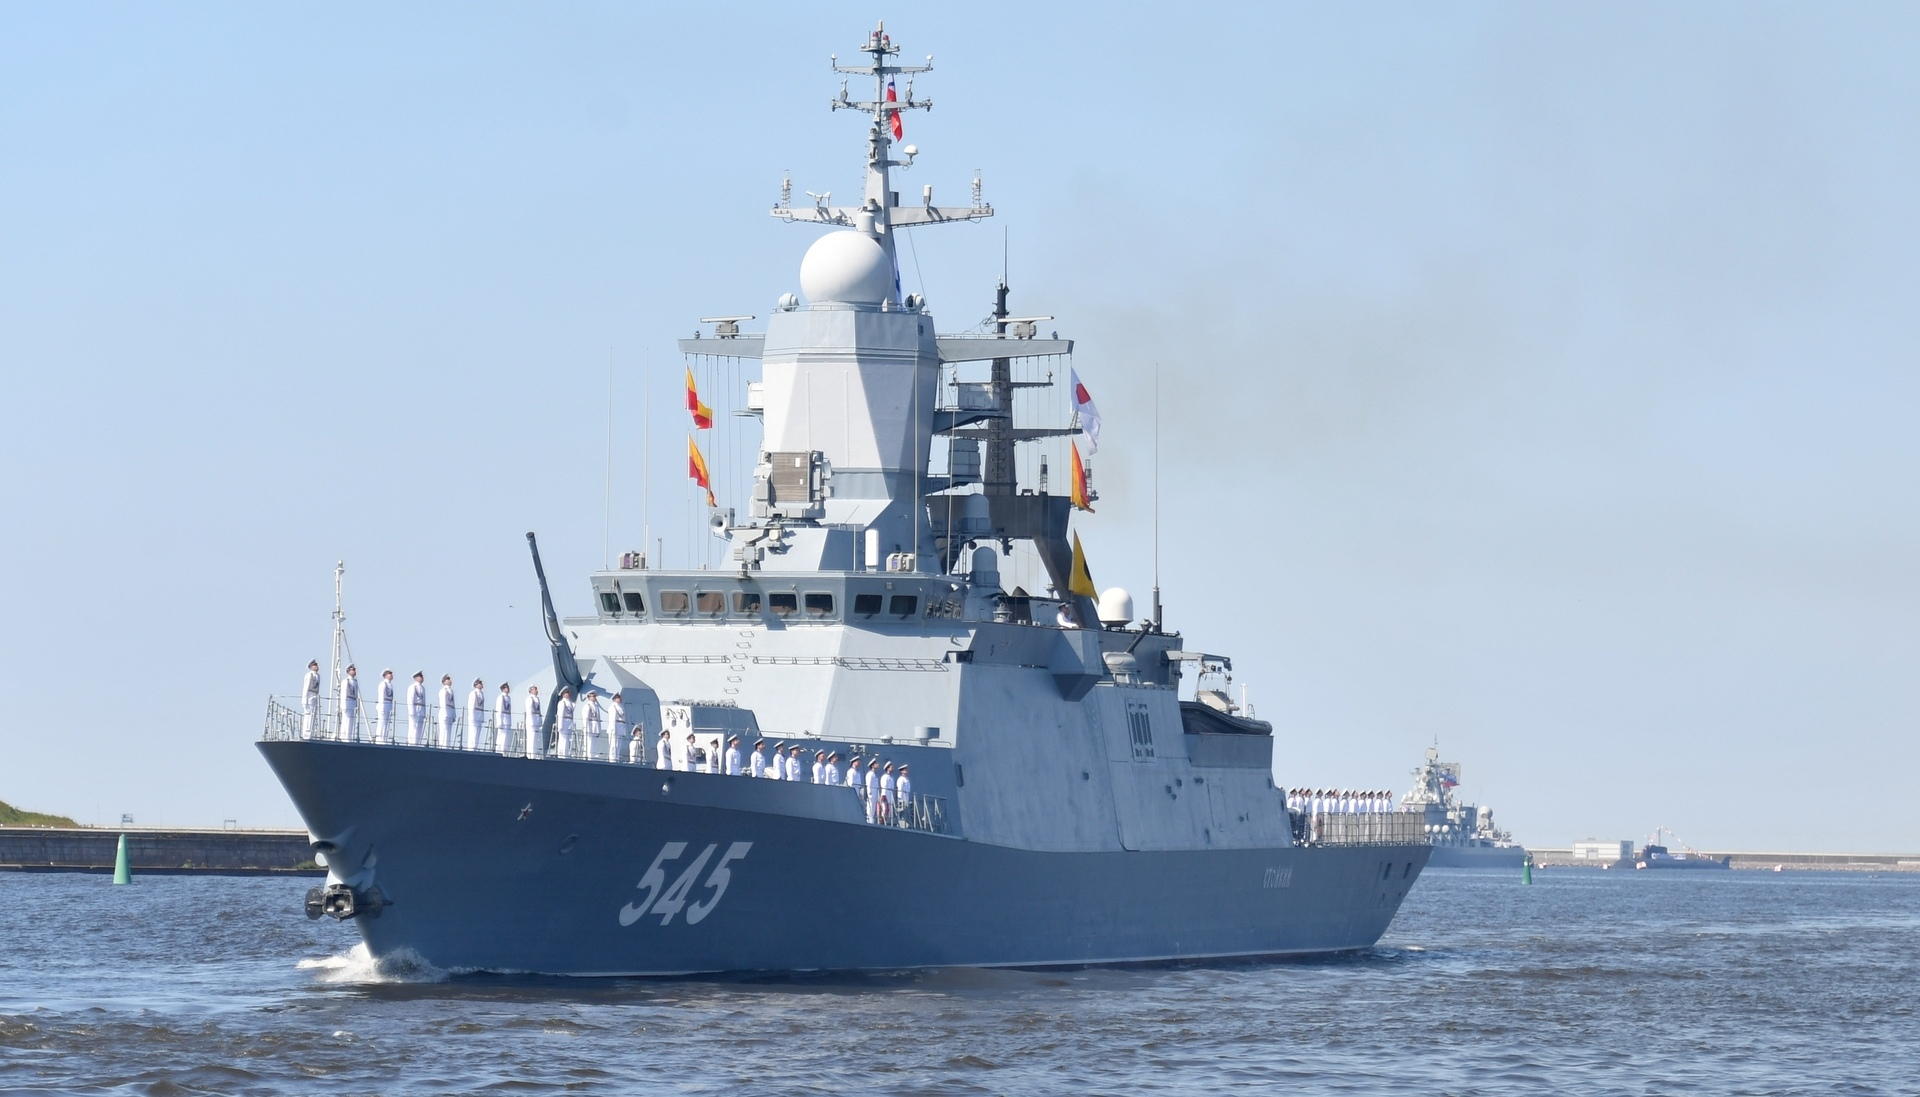 NATO ships entered the Black Sea for the third time in a month